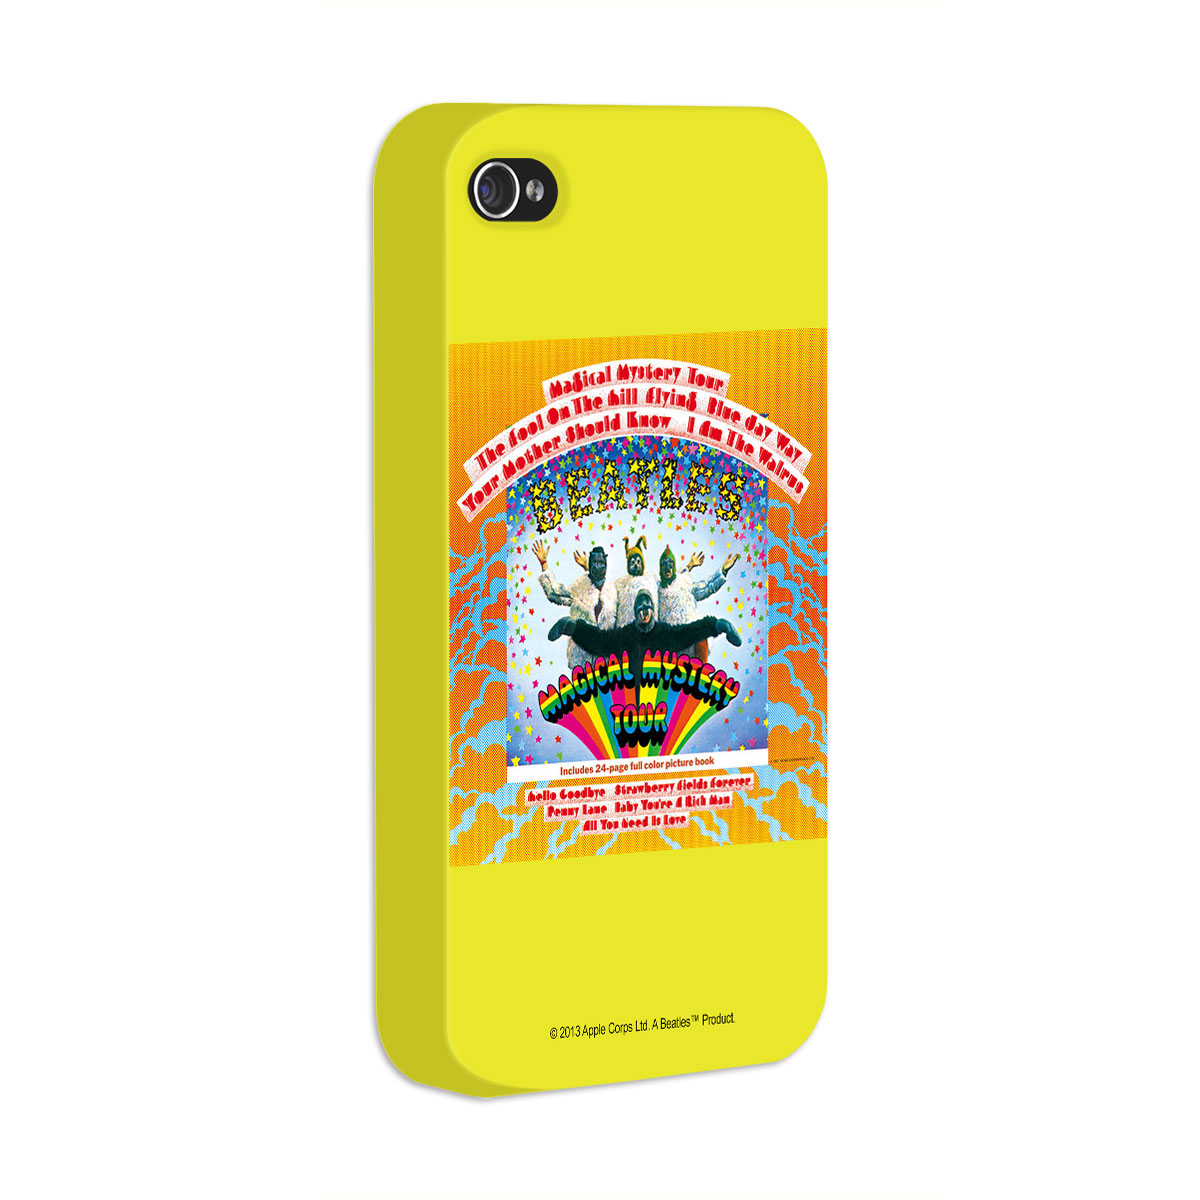 Capa de iPhone 4/4S The Beatles Magical Mistery Tour